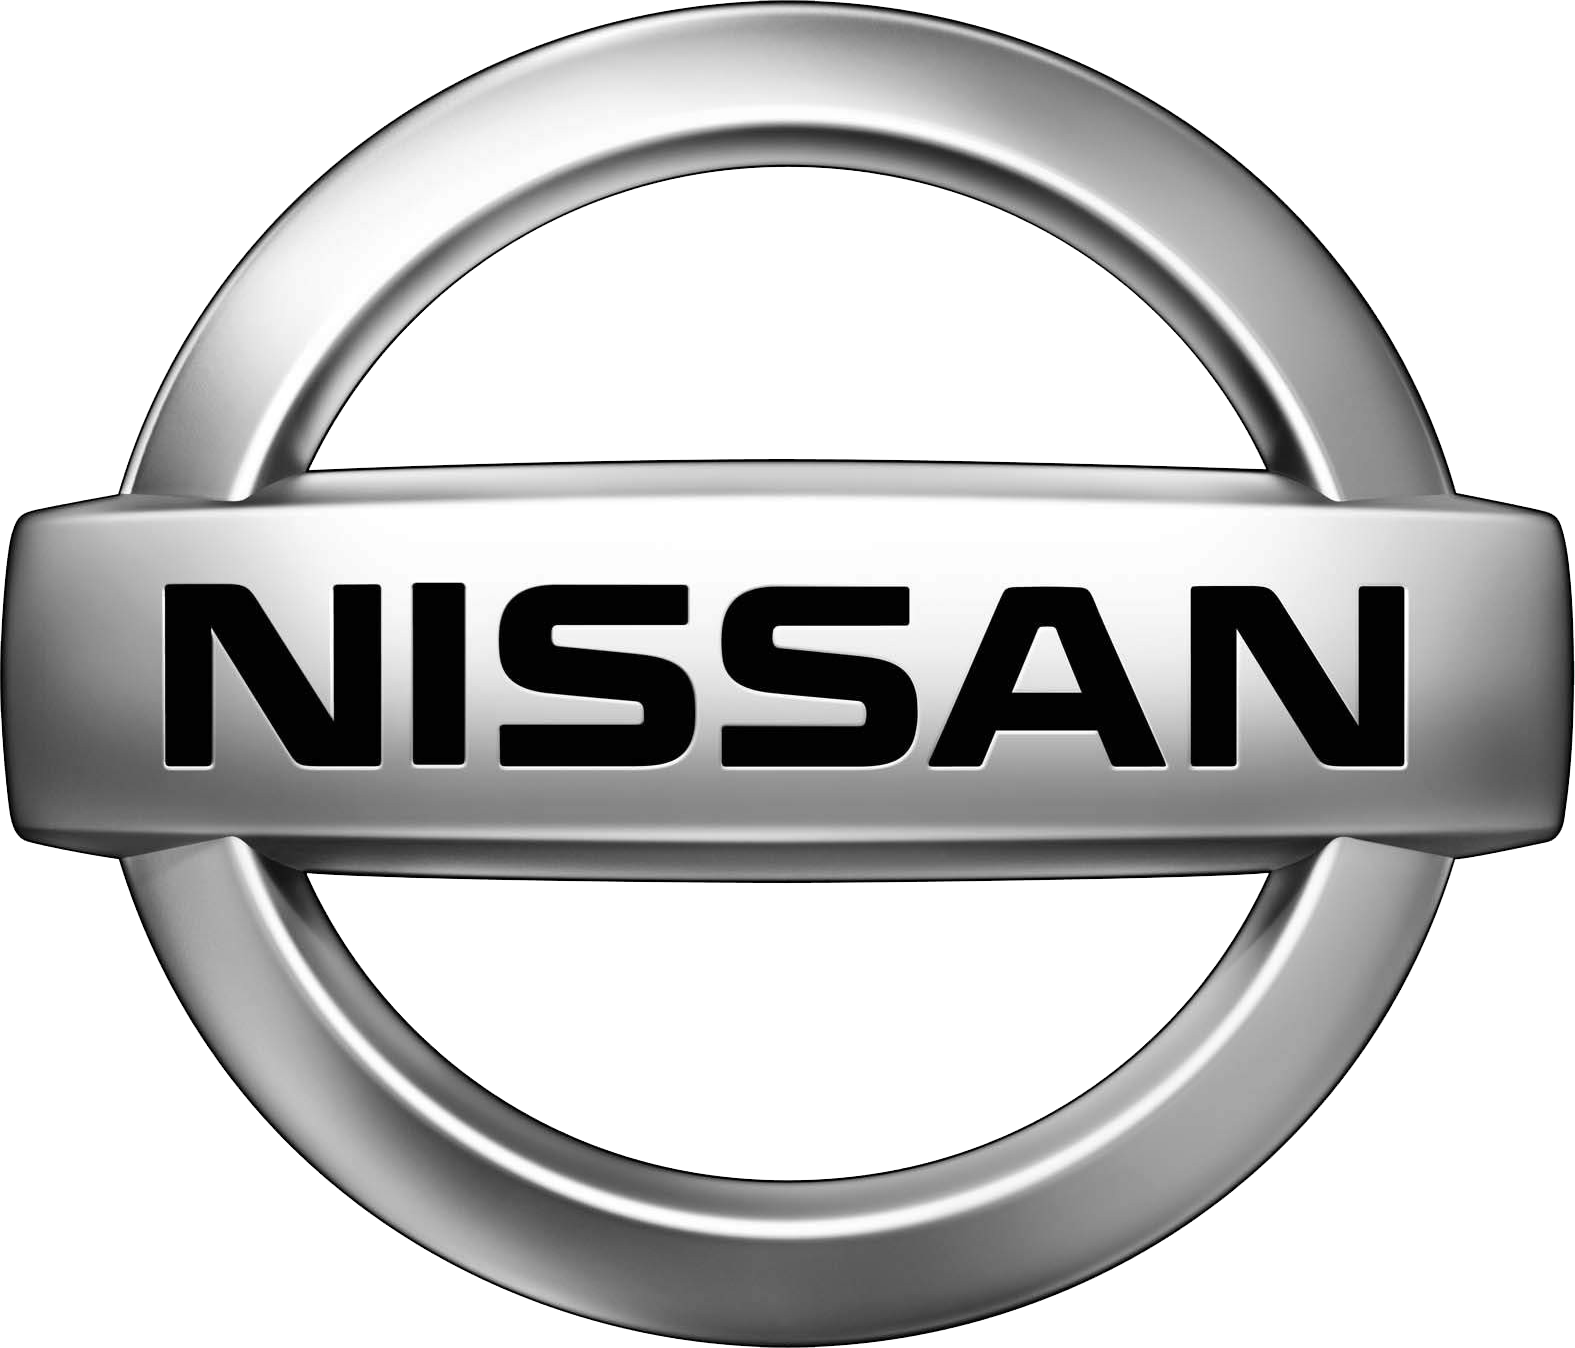 Nissan Logo NGINX Plus Case Study Reliam With Dad Campaign